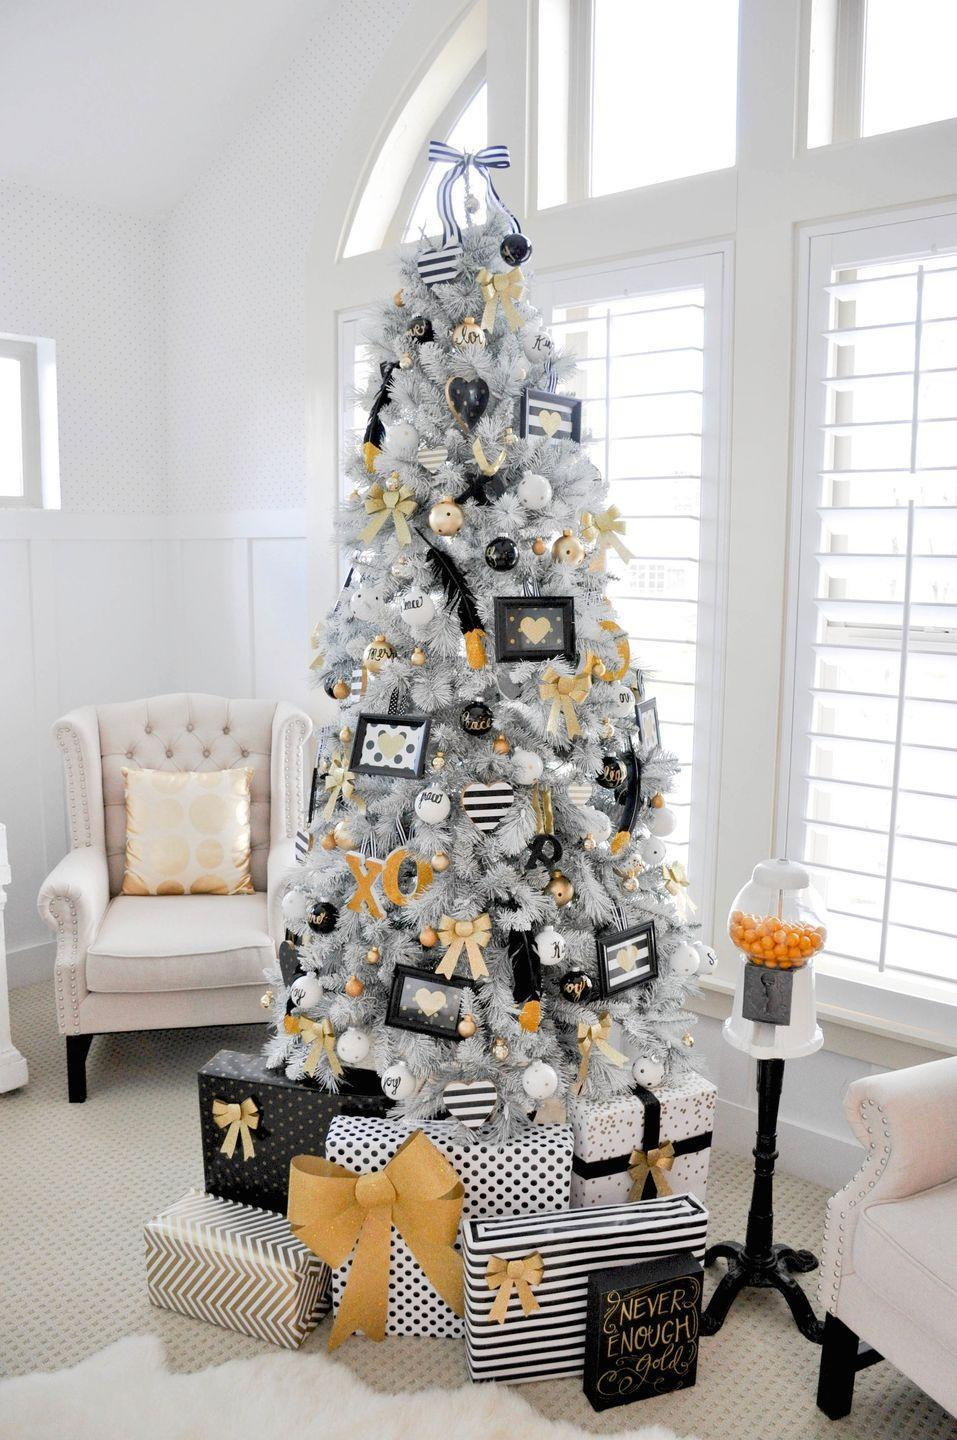 "<p>Black, white, and gold is a timeless color scheme. This tree from <a href=""http://karaspartyideas.com/2014/11/black_white_gold_christmas_tree.html"" rel=""nofollow noopener"" target=""_blank"" data-ylk=""slk:Kara's Party Ideas"" class=""link rapid-noclick-resp"">Kara's Party Ideas</a> is covered with gold-dipped feathers, photo frames, bows, and even presents wrapped to match. </p>"